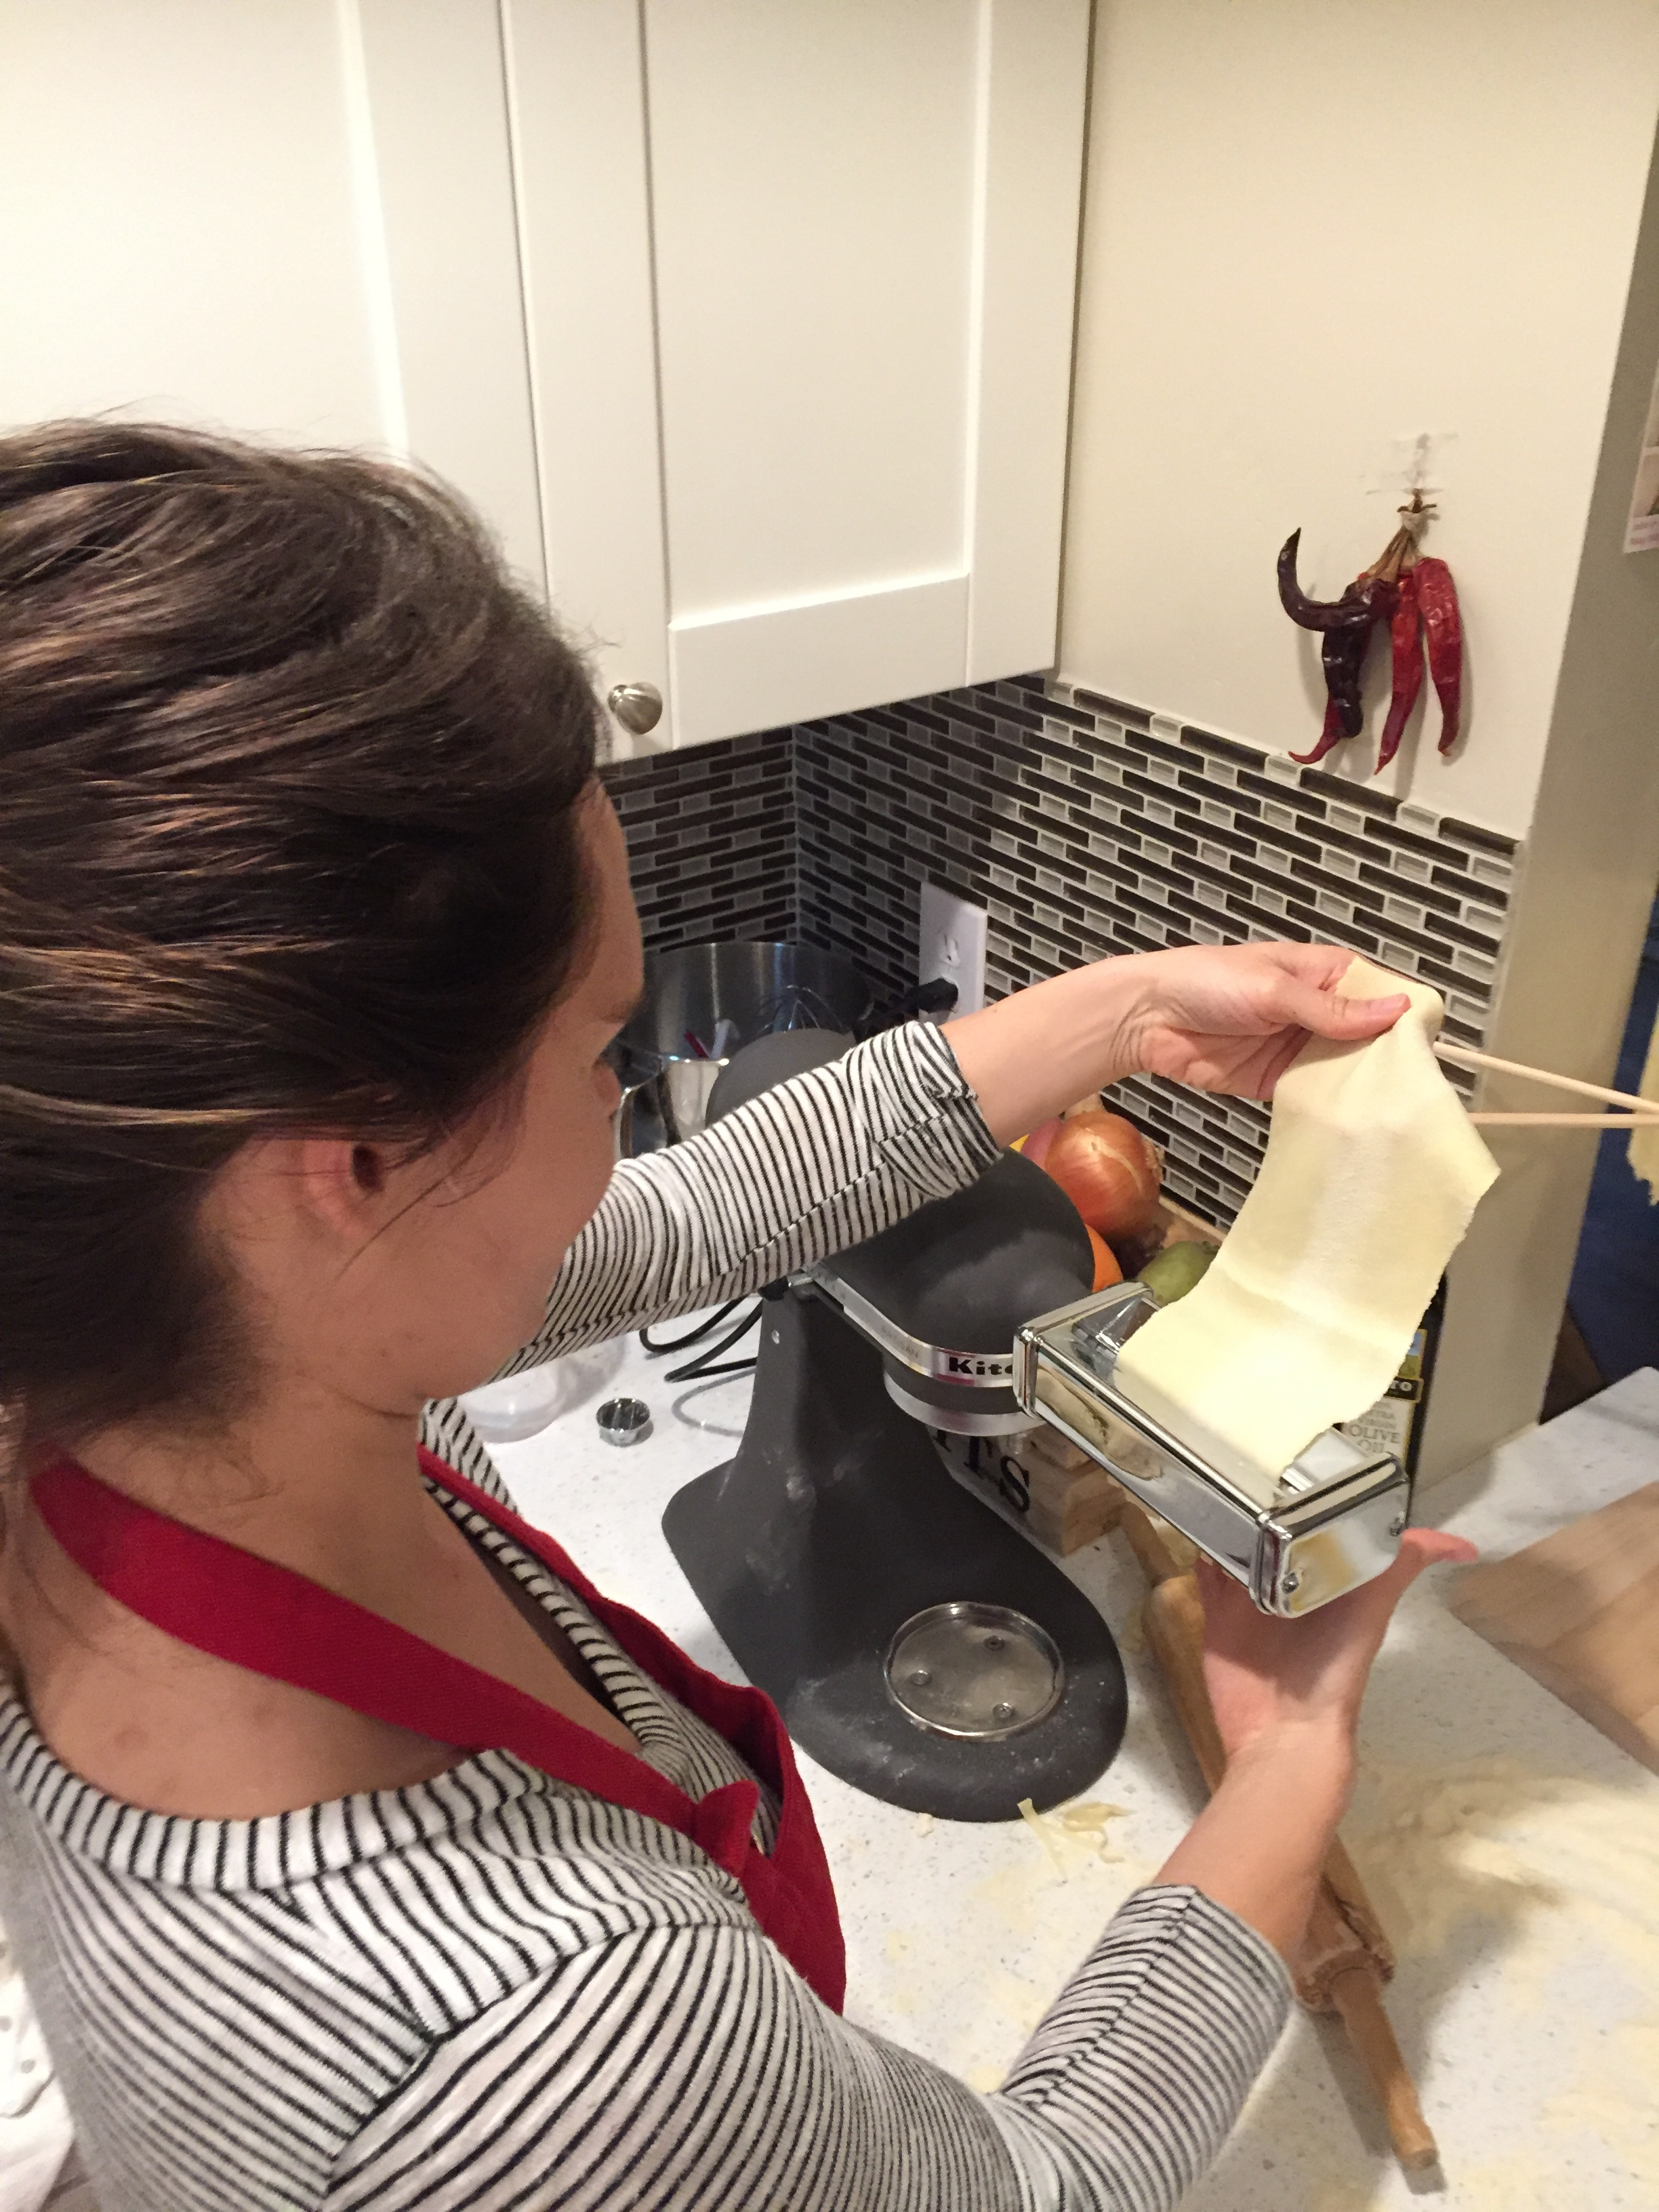 Making Pasta with Chef Kathryn